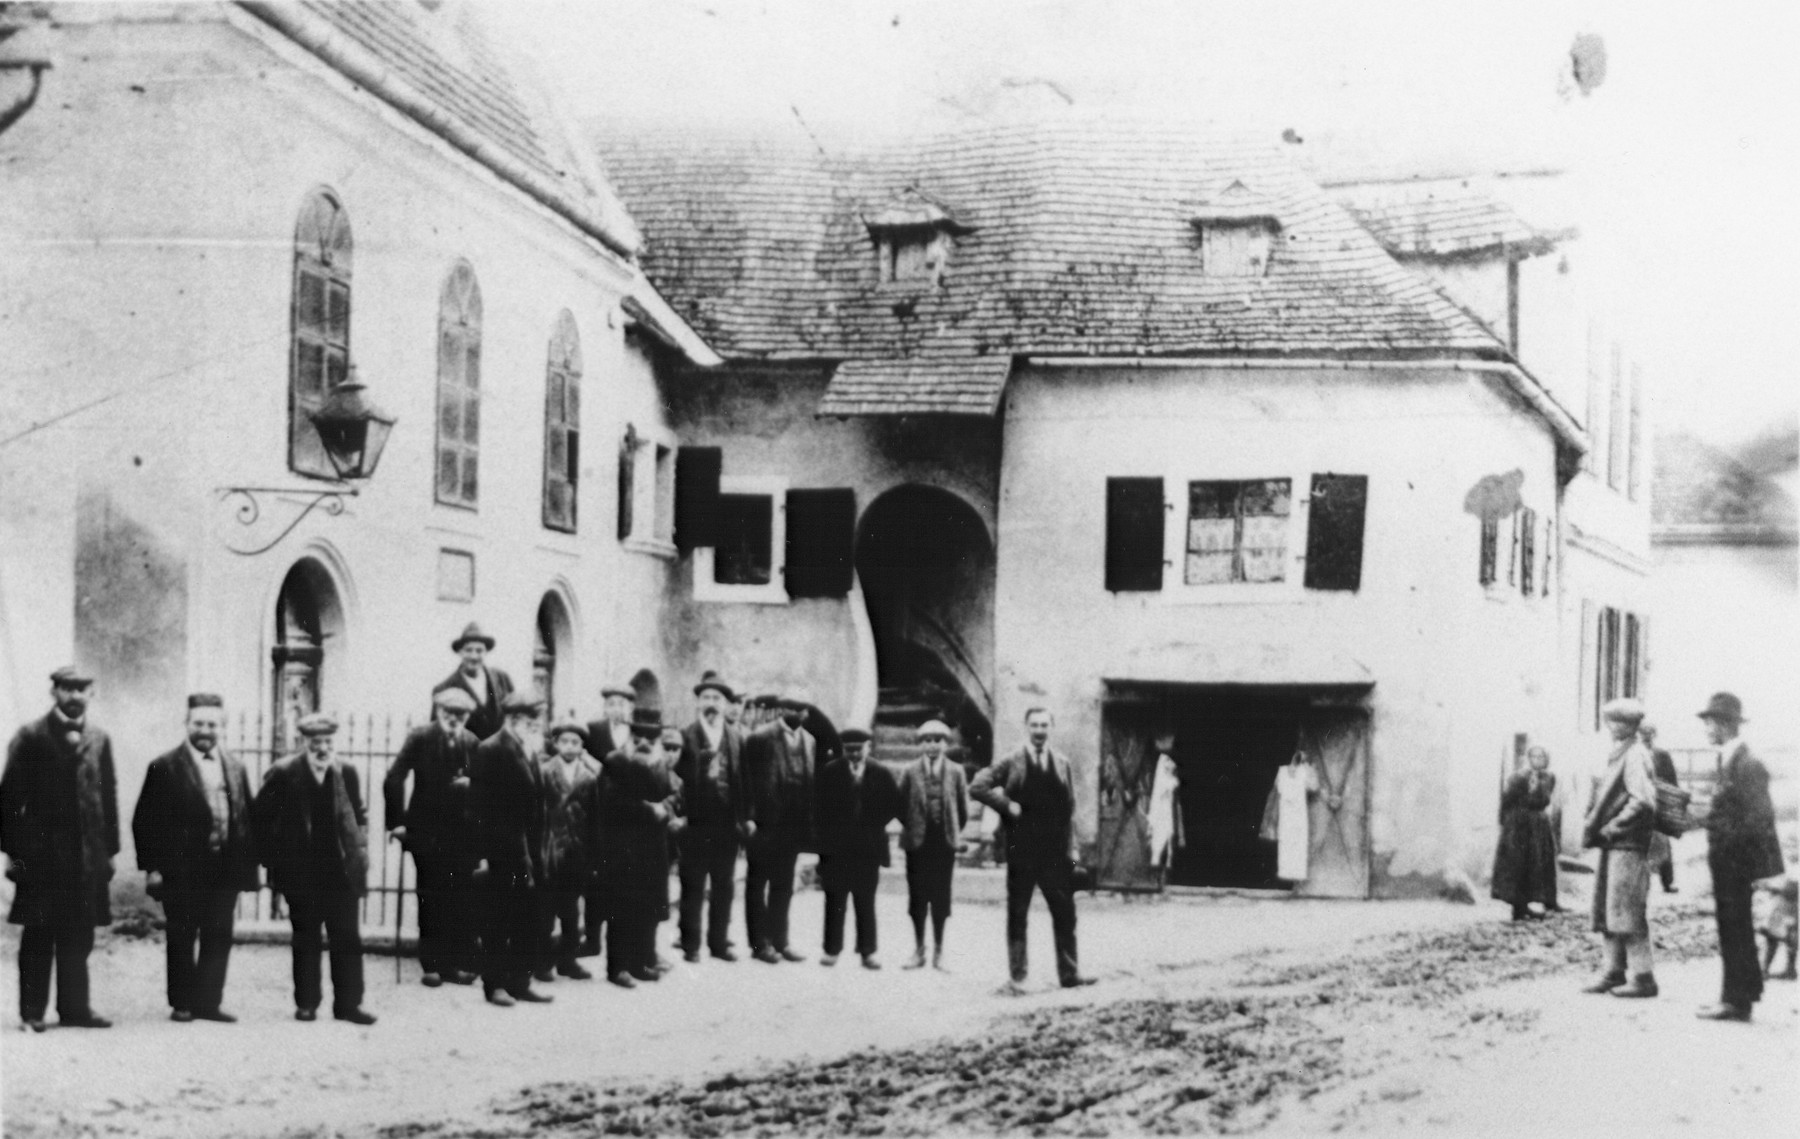 Local Jewish residents gather outside the synagogue in Mattersburg, Austria.